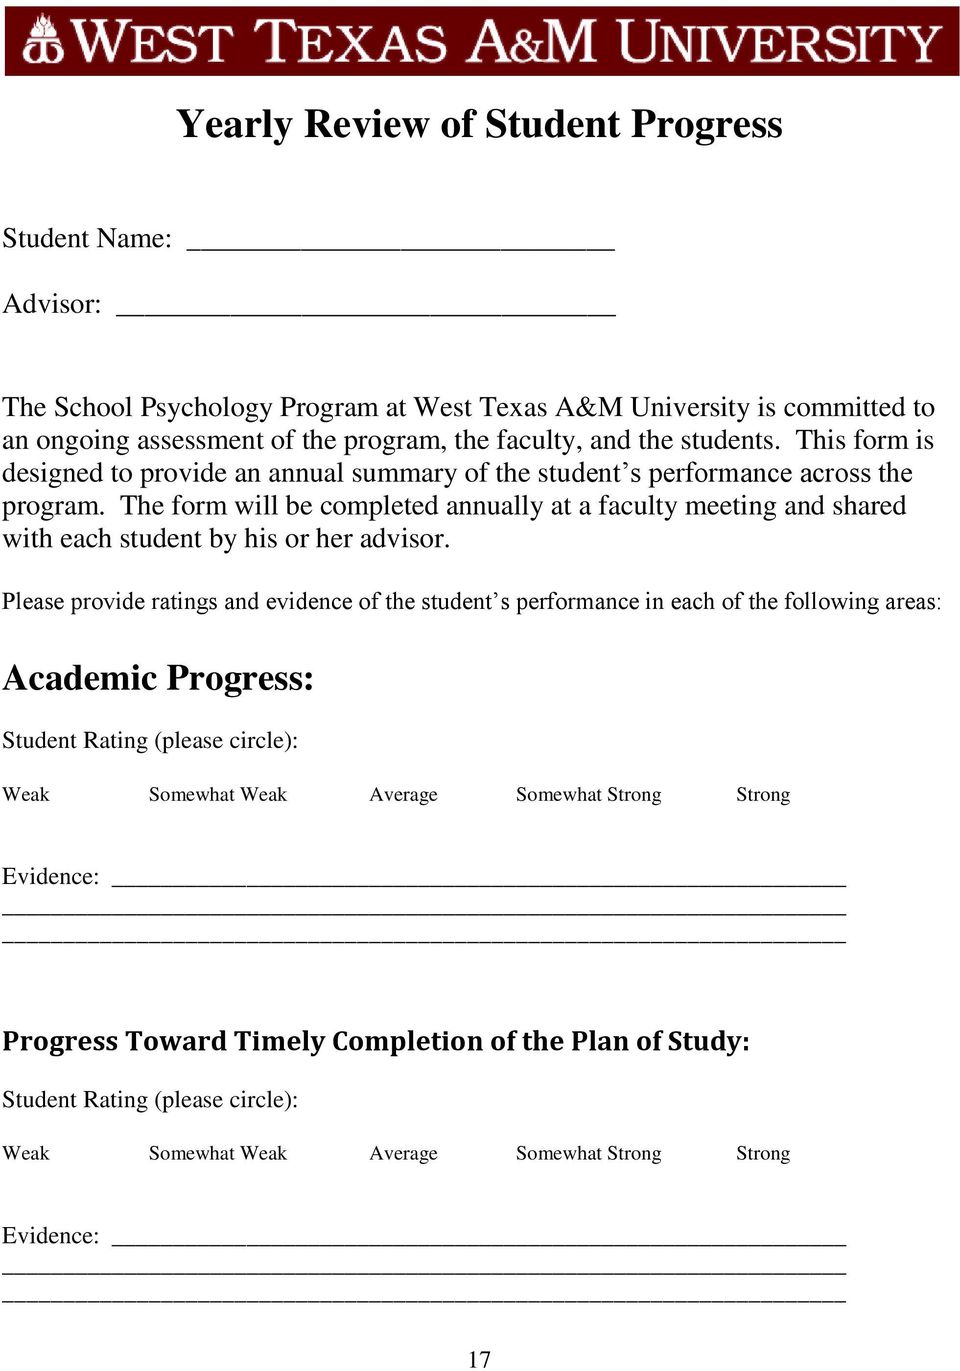 The form will be completed annually at a faculty meeting and shared with each student by his or her advisor.